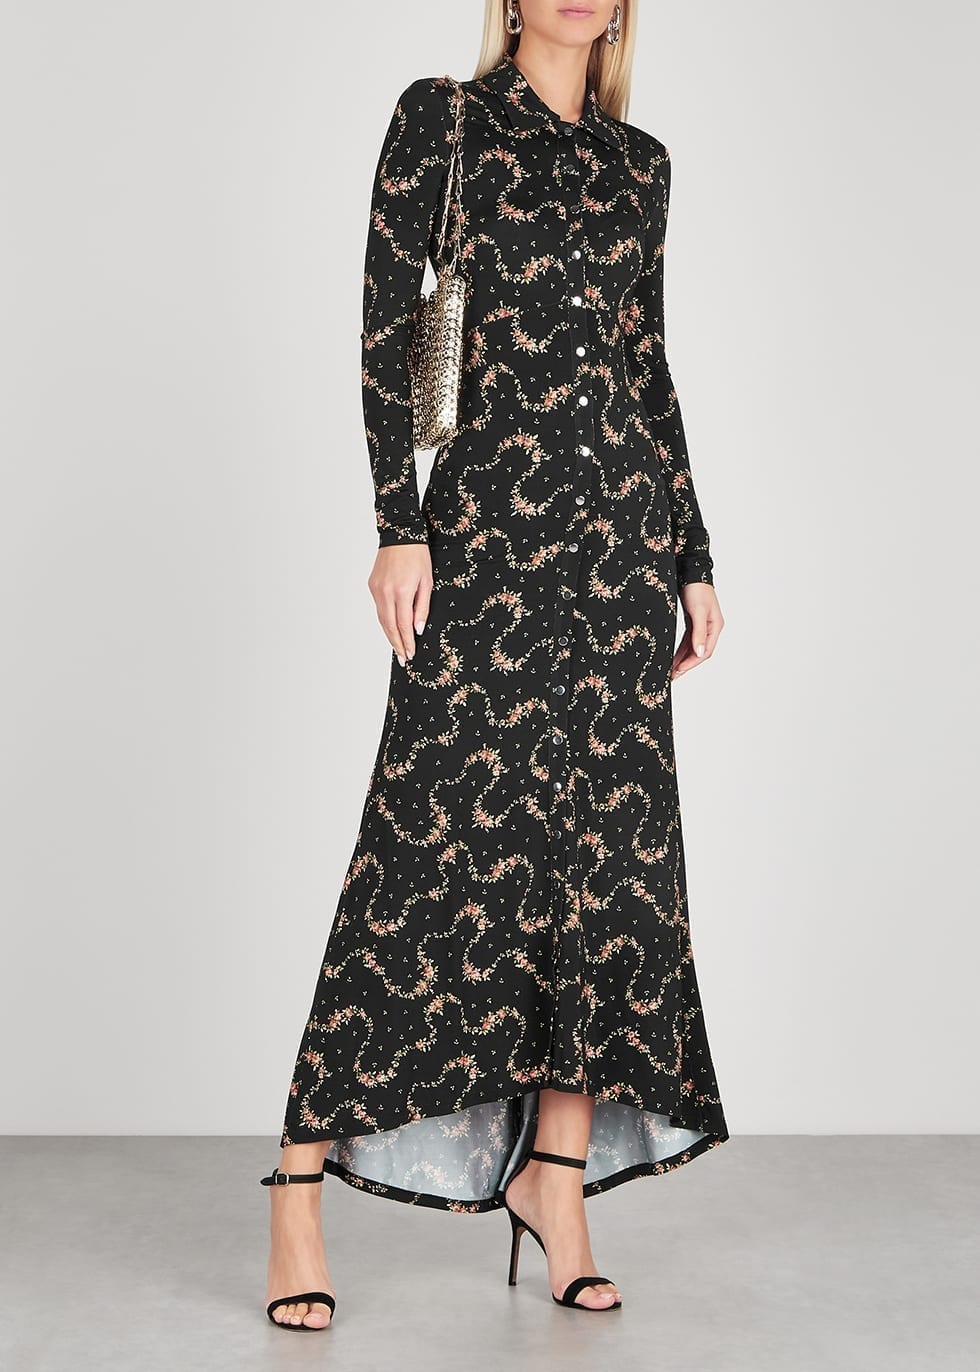 PACO RABANNE Floral-print Jersey Maxi Dress